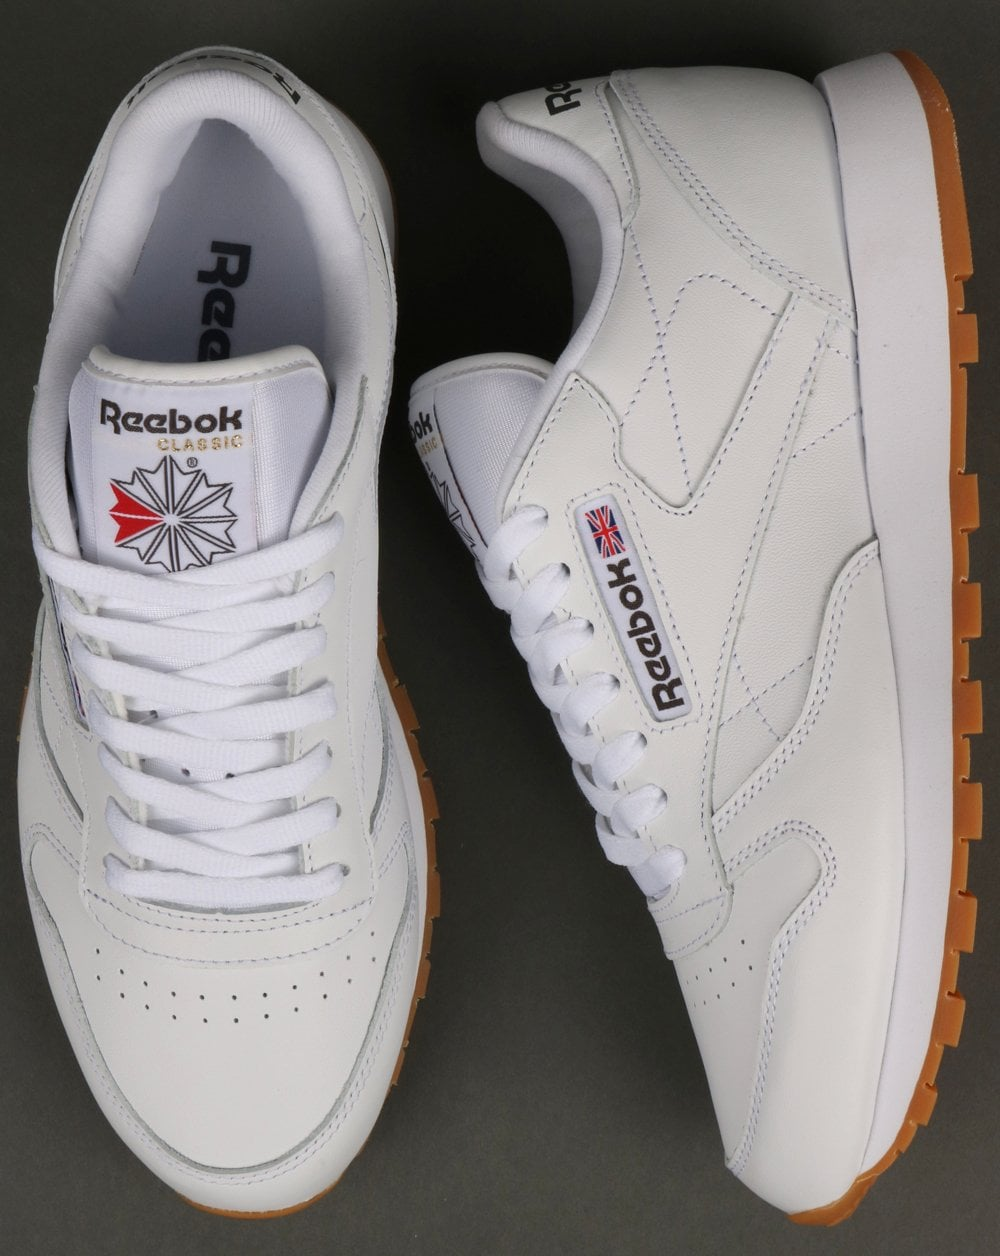 Classics White80s Trainers Reebok Sole Casual Gum Classic Leather 5JuF1clKT3